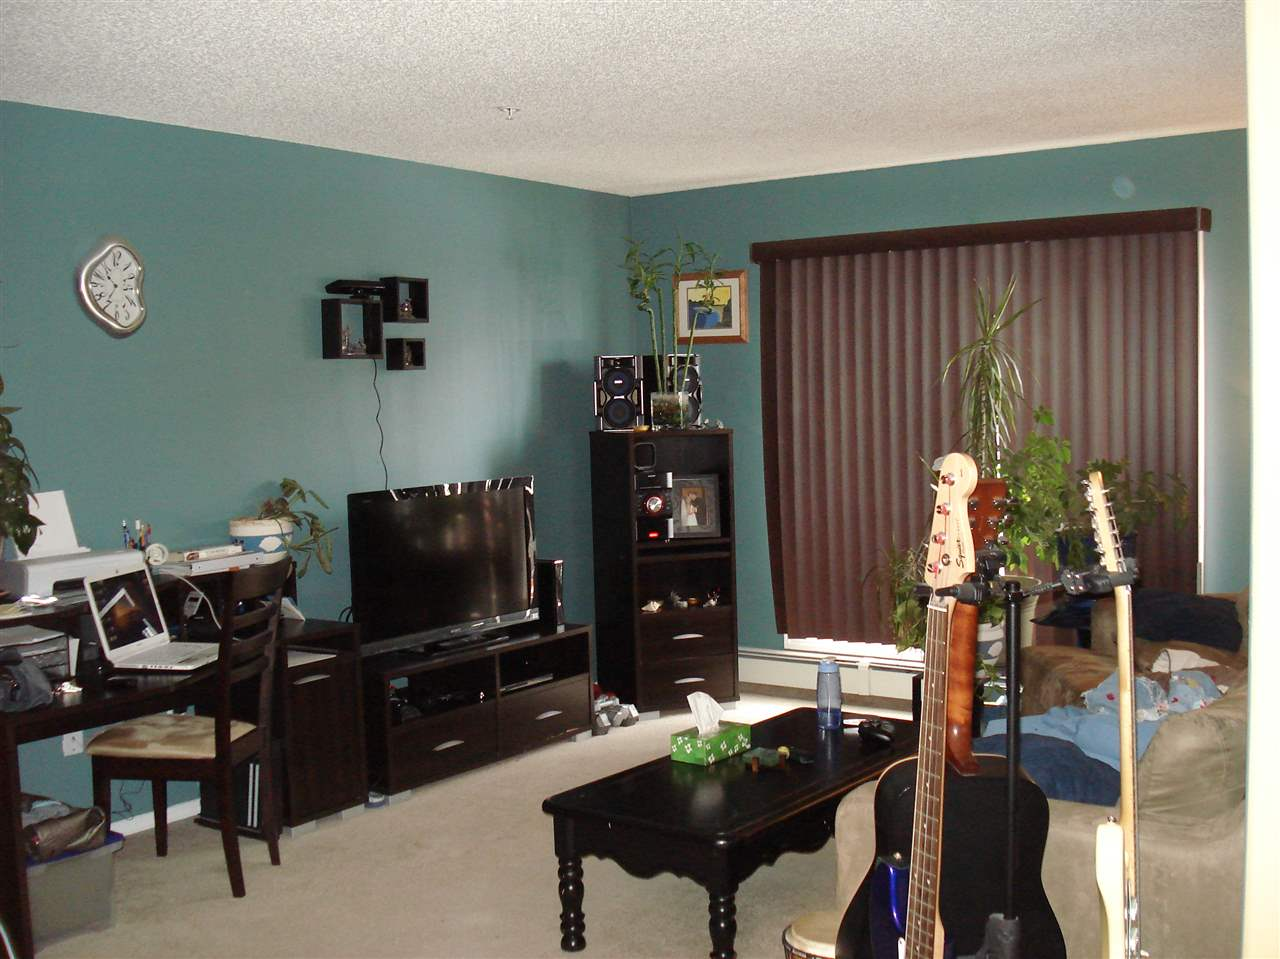 Photo 16: 106 9910 107 Street: Morinville Condo for sale : MLS(r) # E4040993